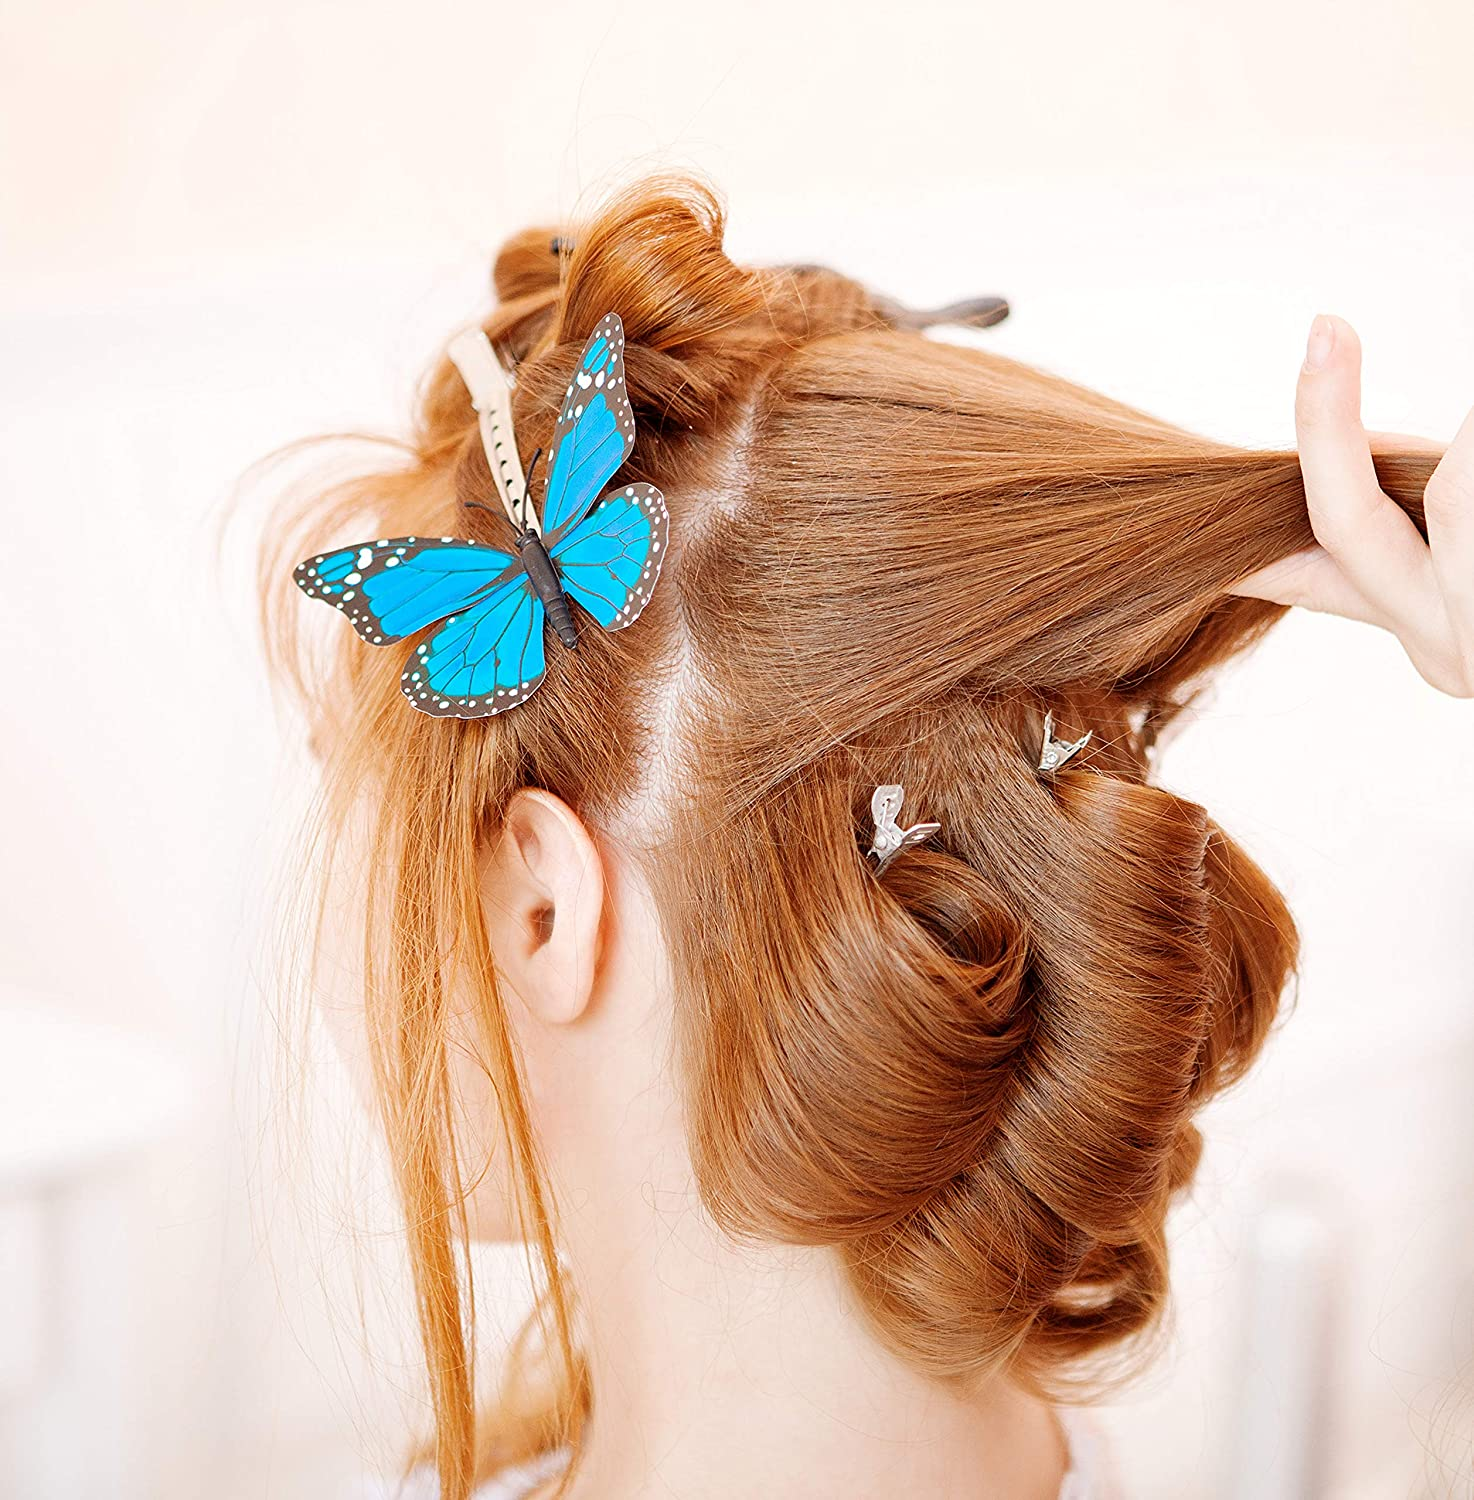 Details about  /Shiny Glitter Acrylic Horn Hair Clip Clamp Duckbill Hair Clips For Styling Hairs